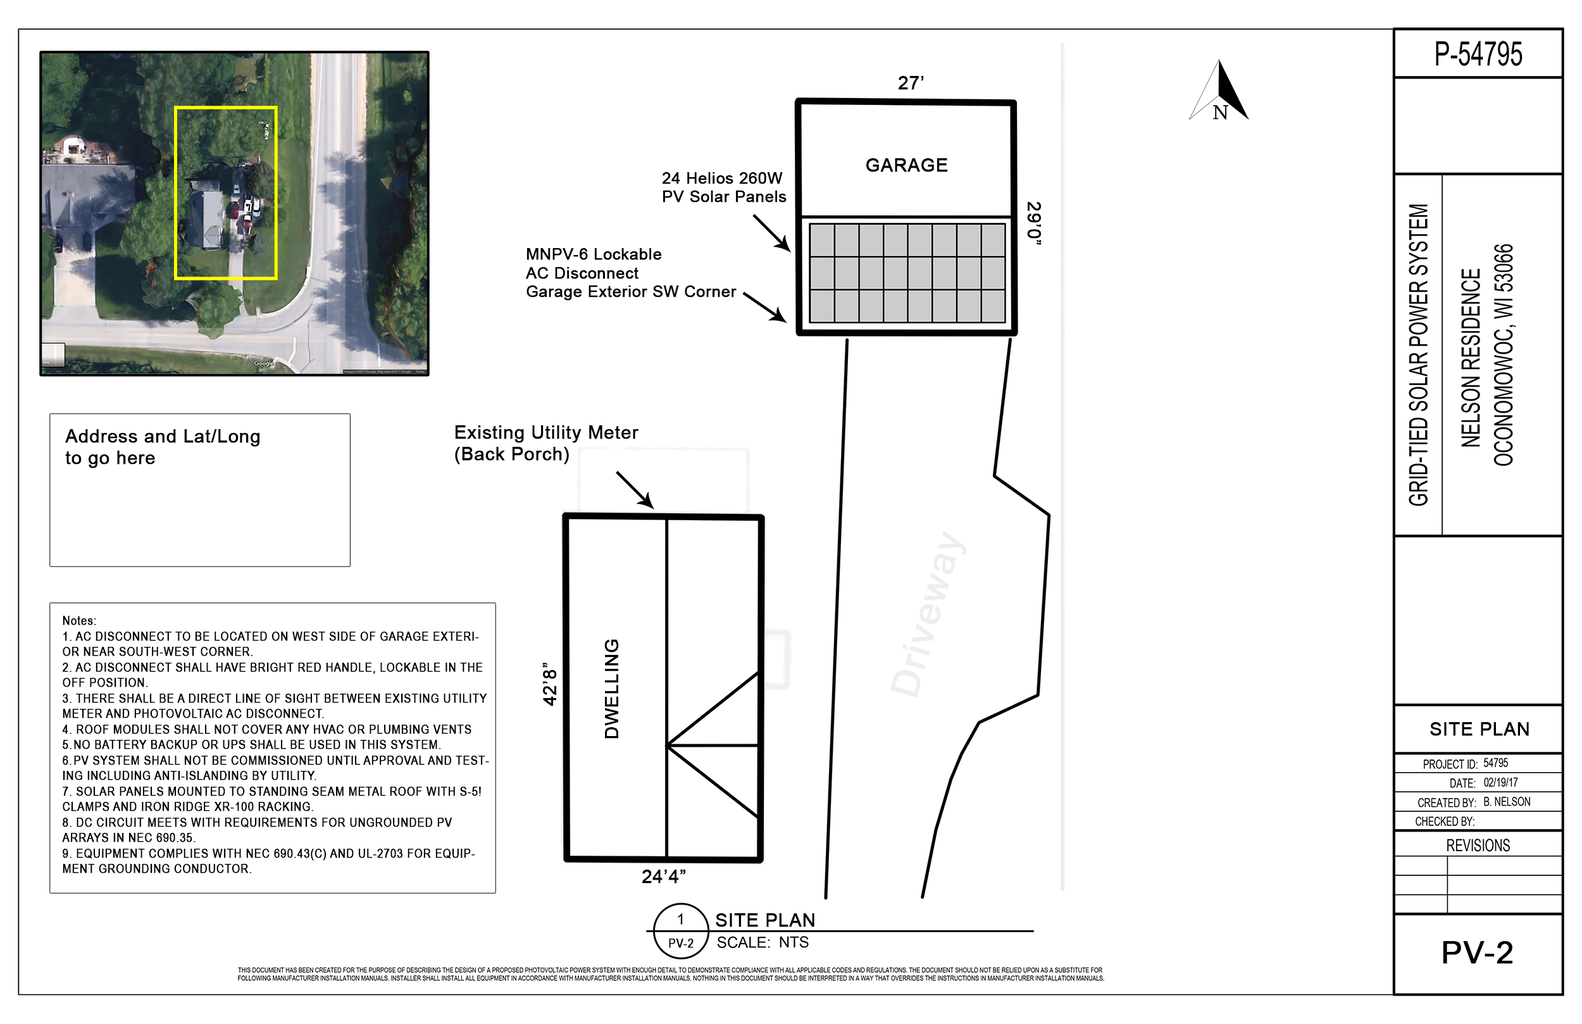 Proposal and Permitting